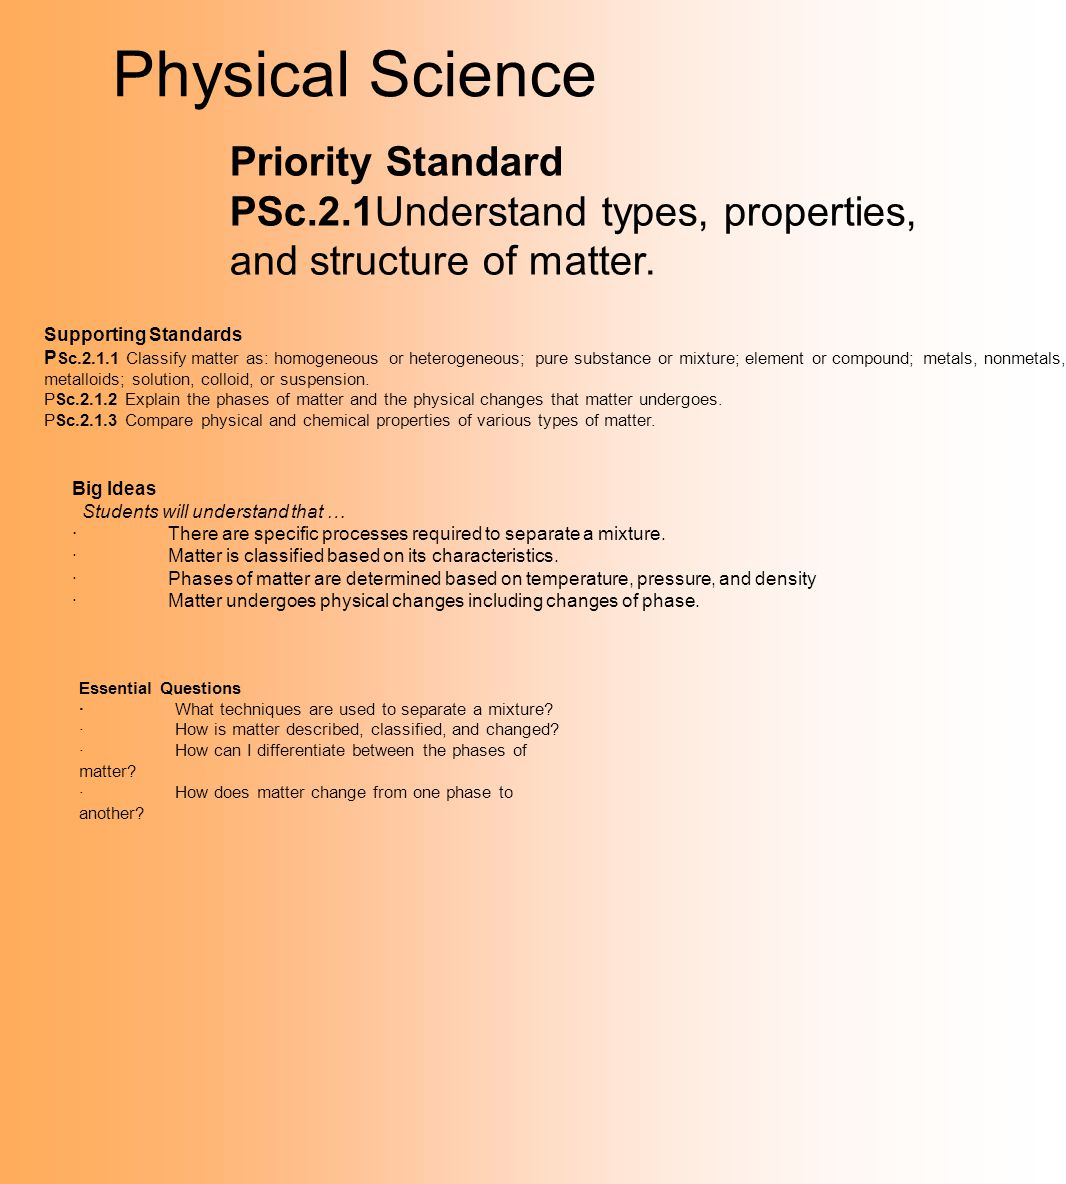 Physical Science Priority Standard